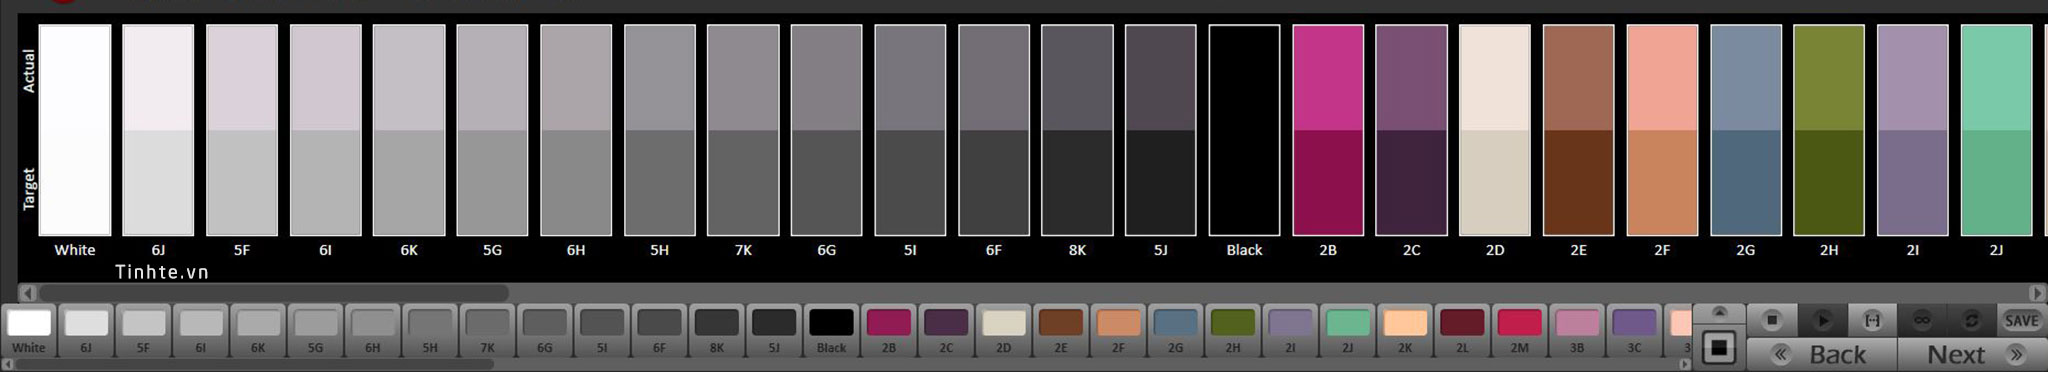 Color-Comparator-chart.jpg